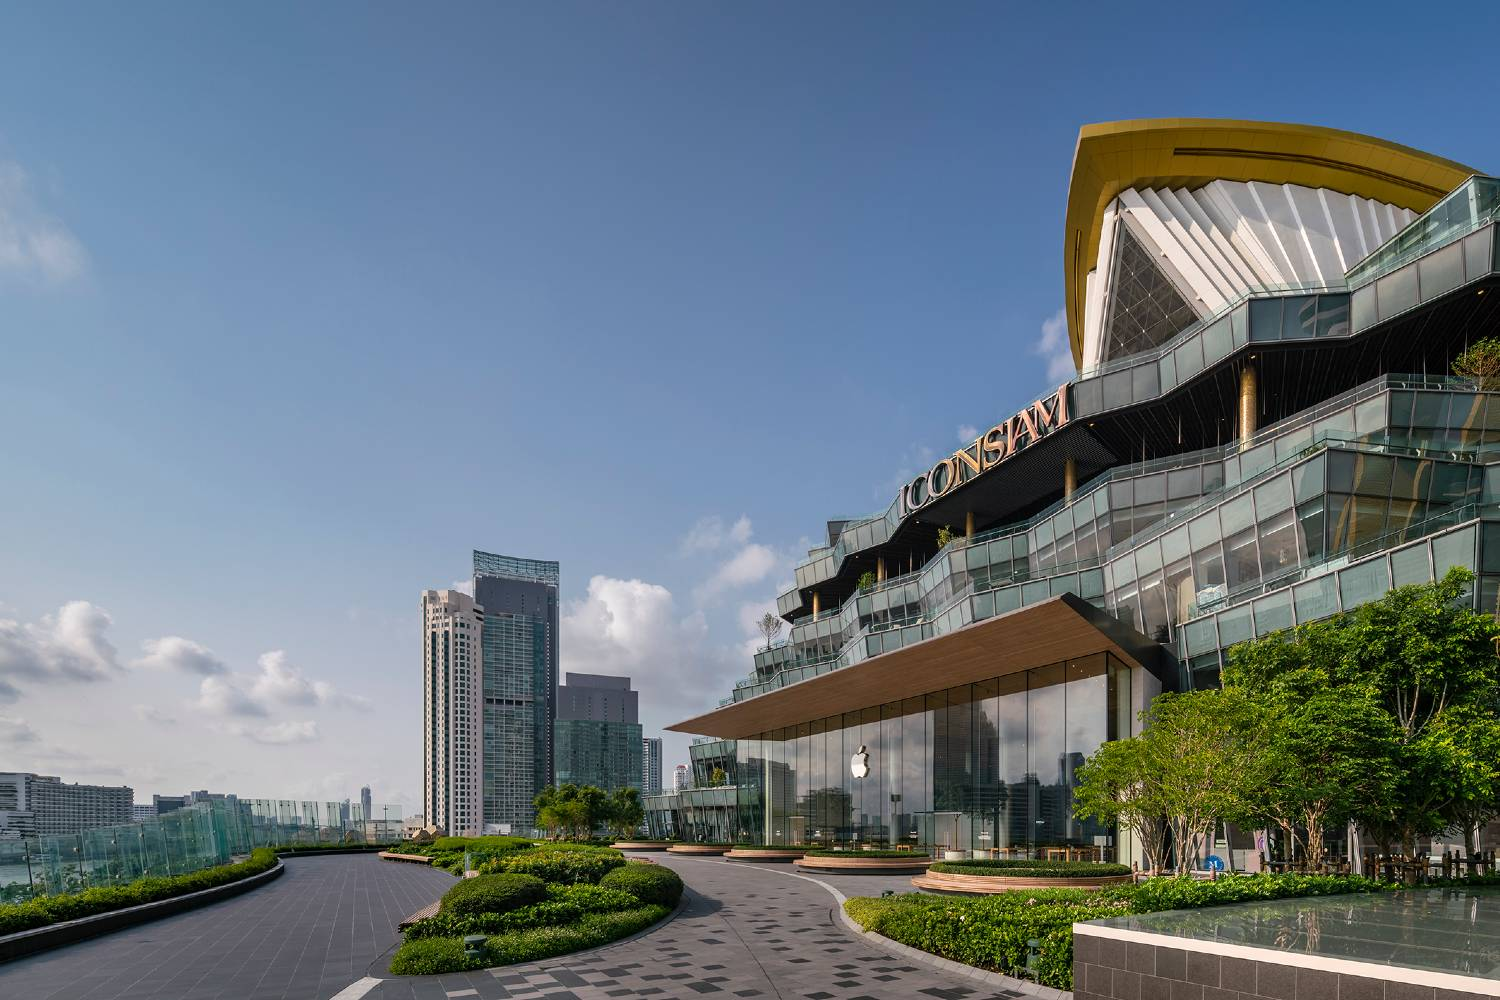 ICONSIAM Park met daaraan grenzende de Apple Store in ICONSIAM